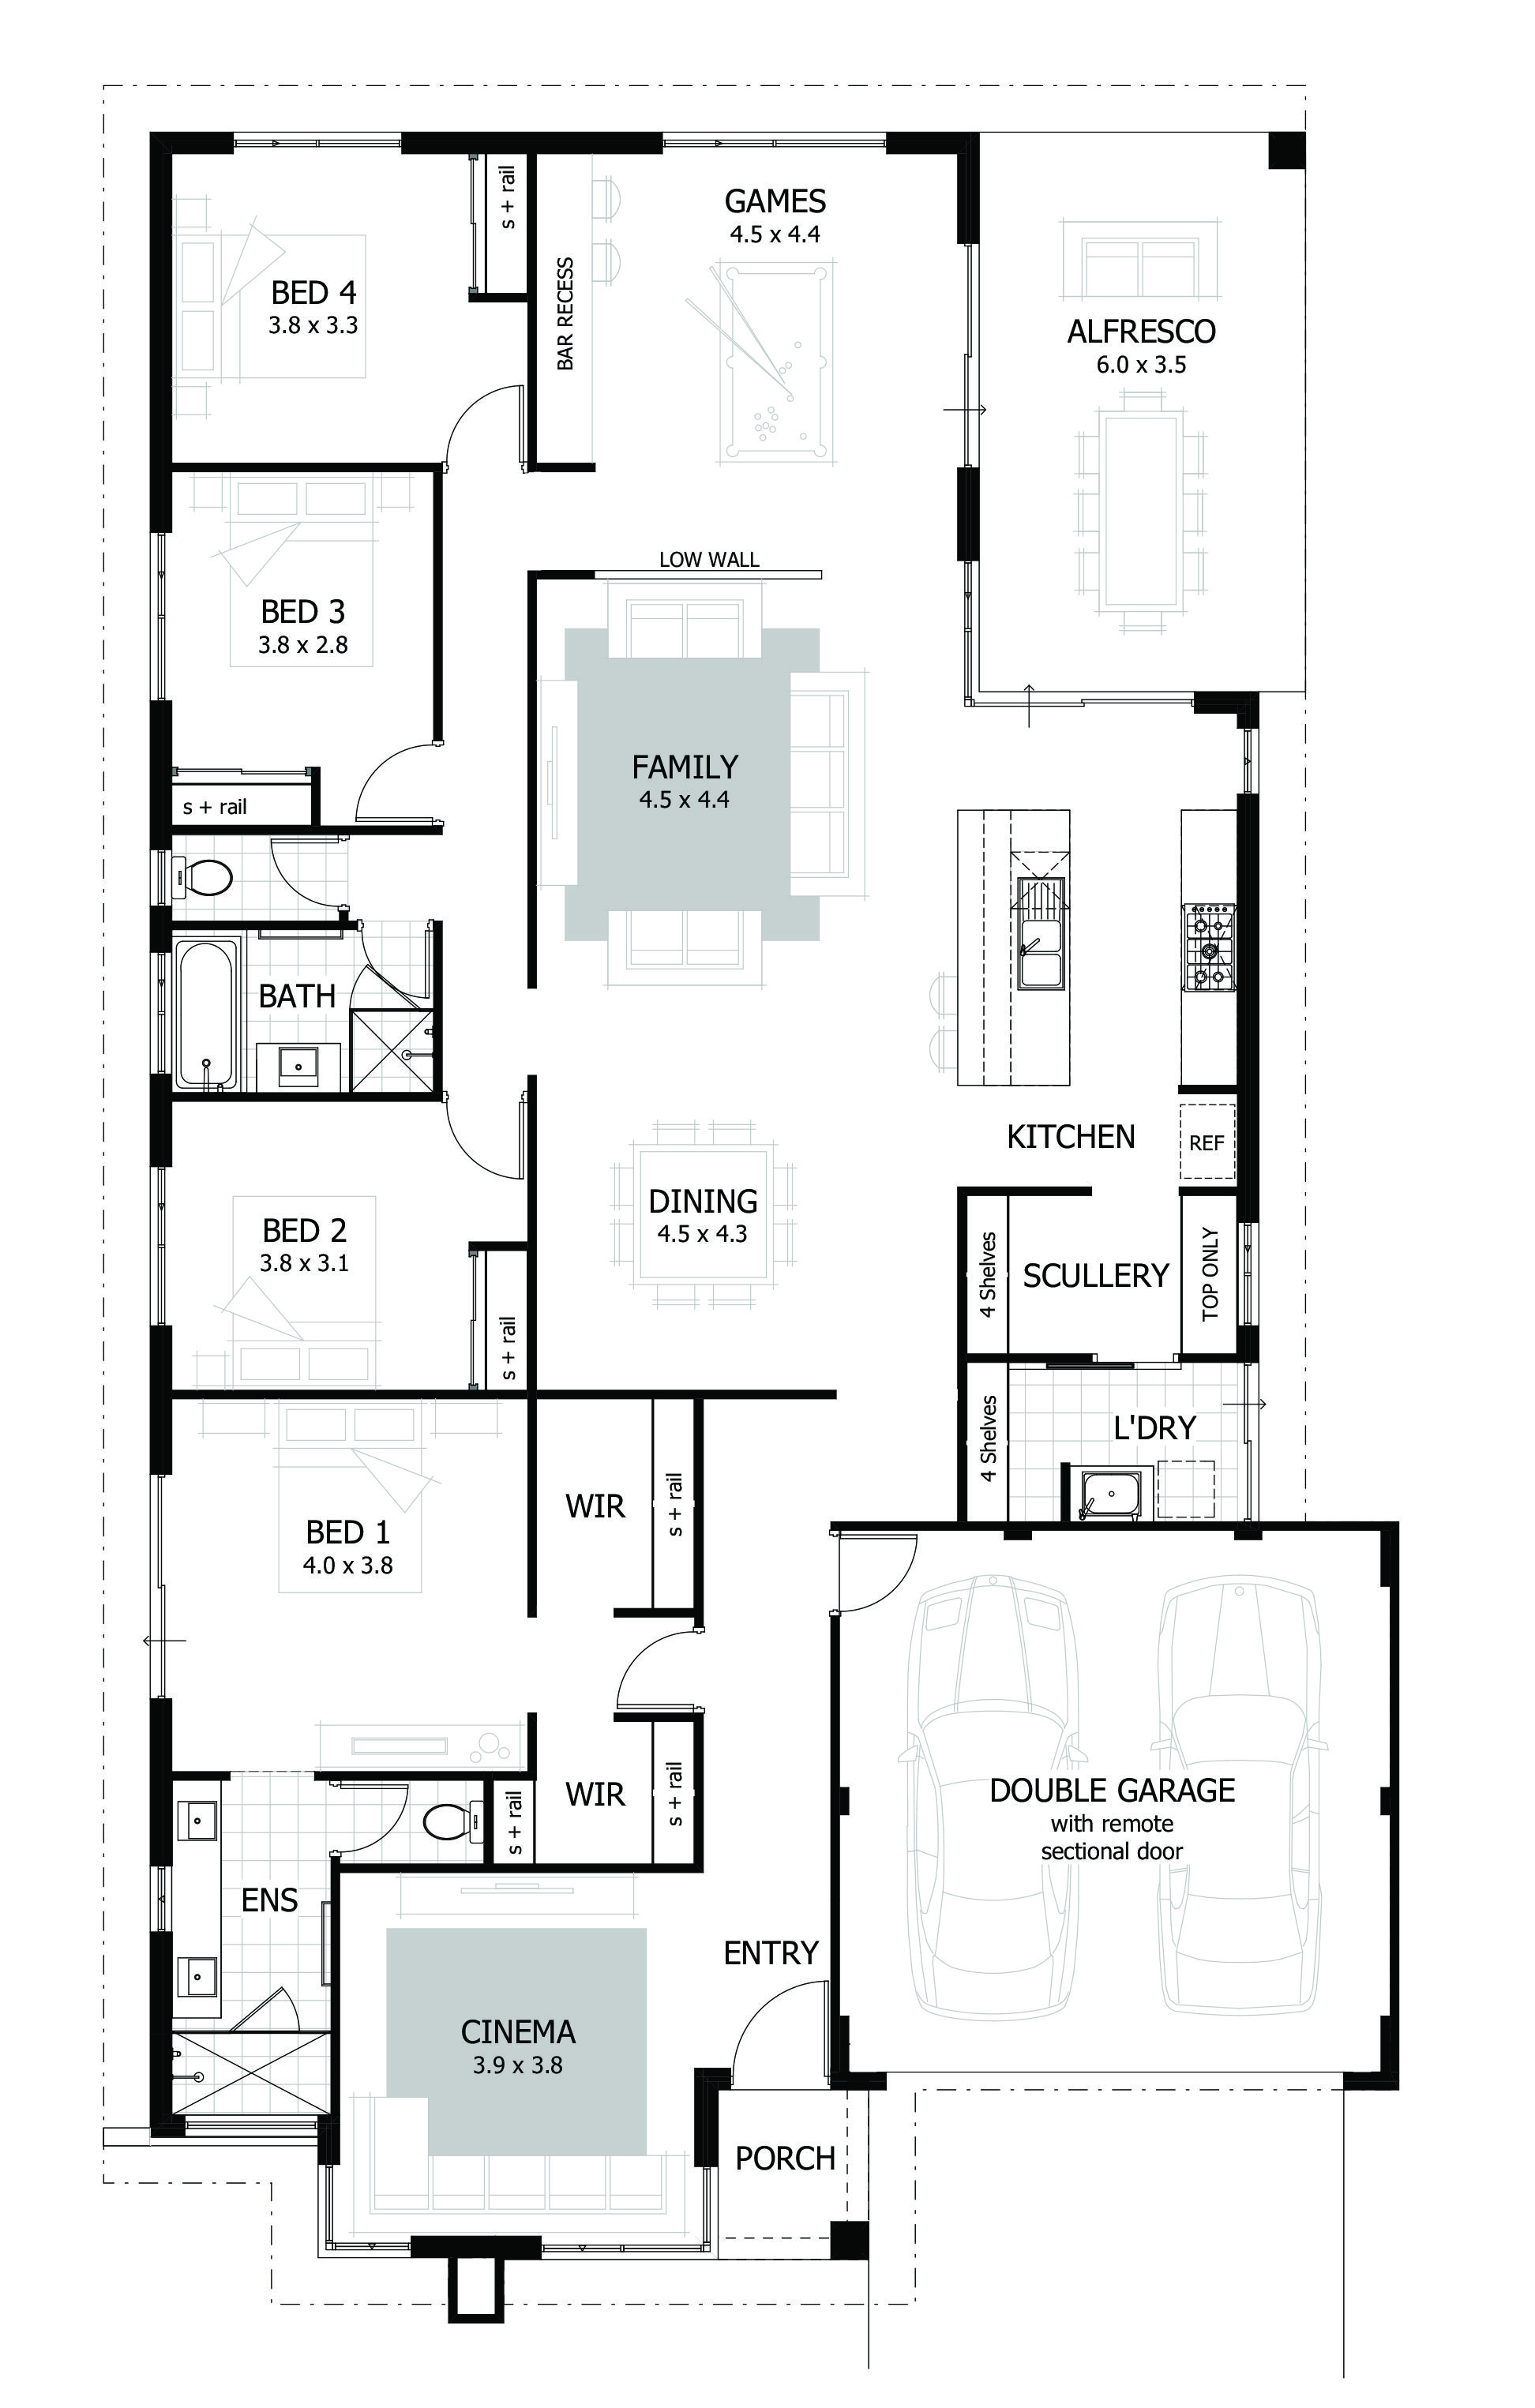 4 Bedroom House Plans Home Designs Bungalow Floor Plans House